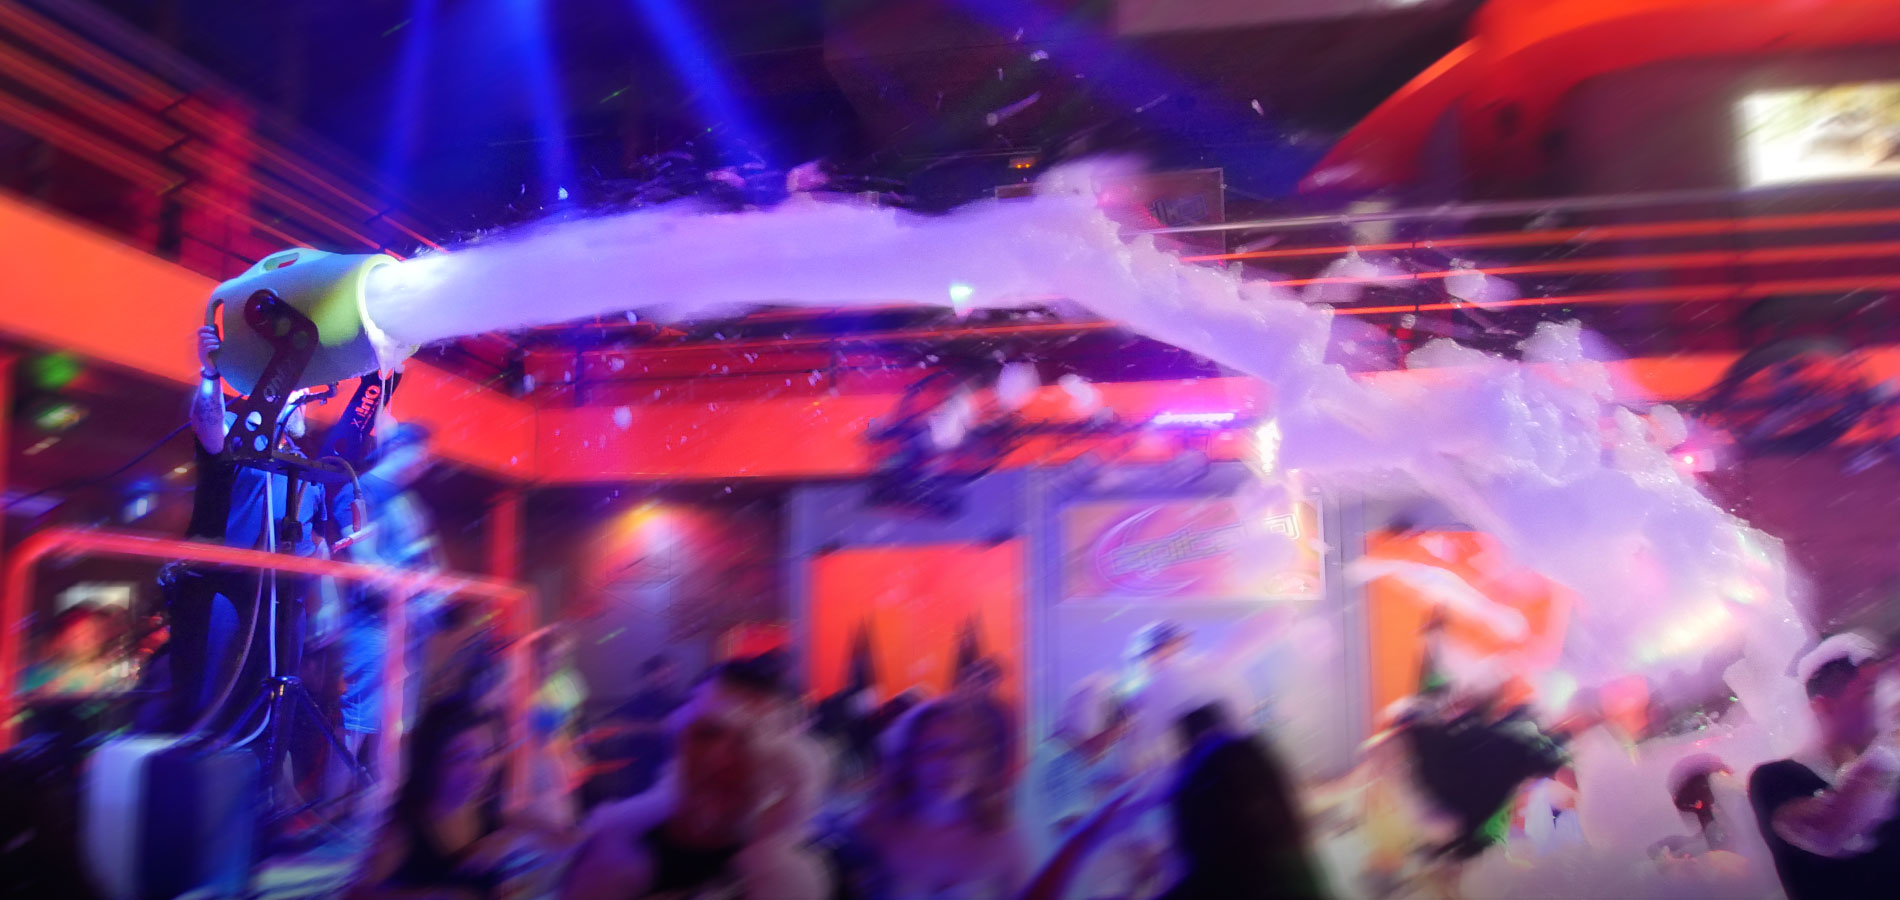 FOAM CANNONS FOR A FANTASTIC PARTY